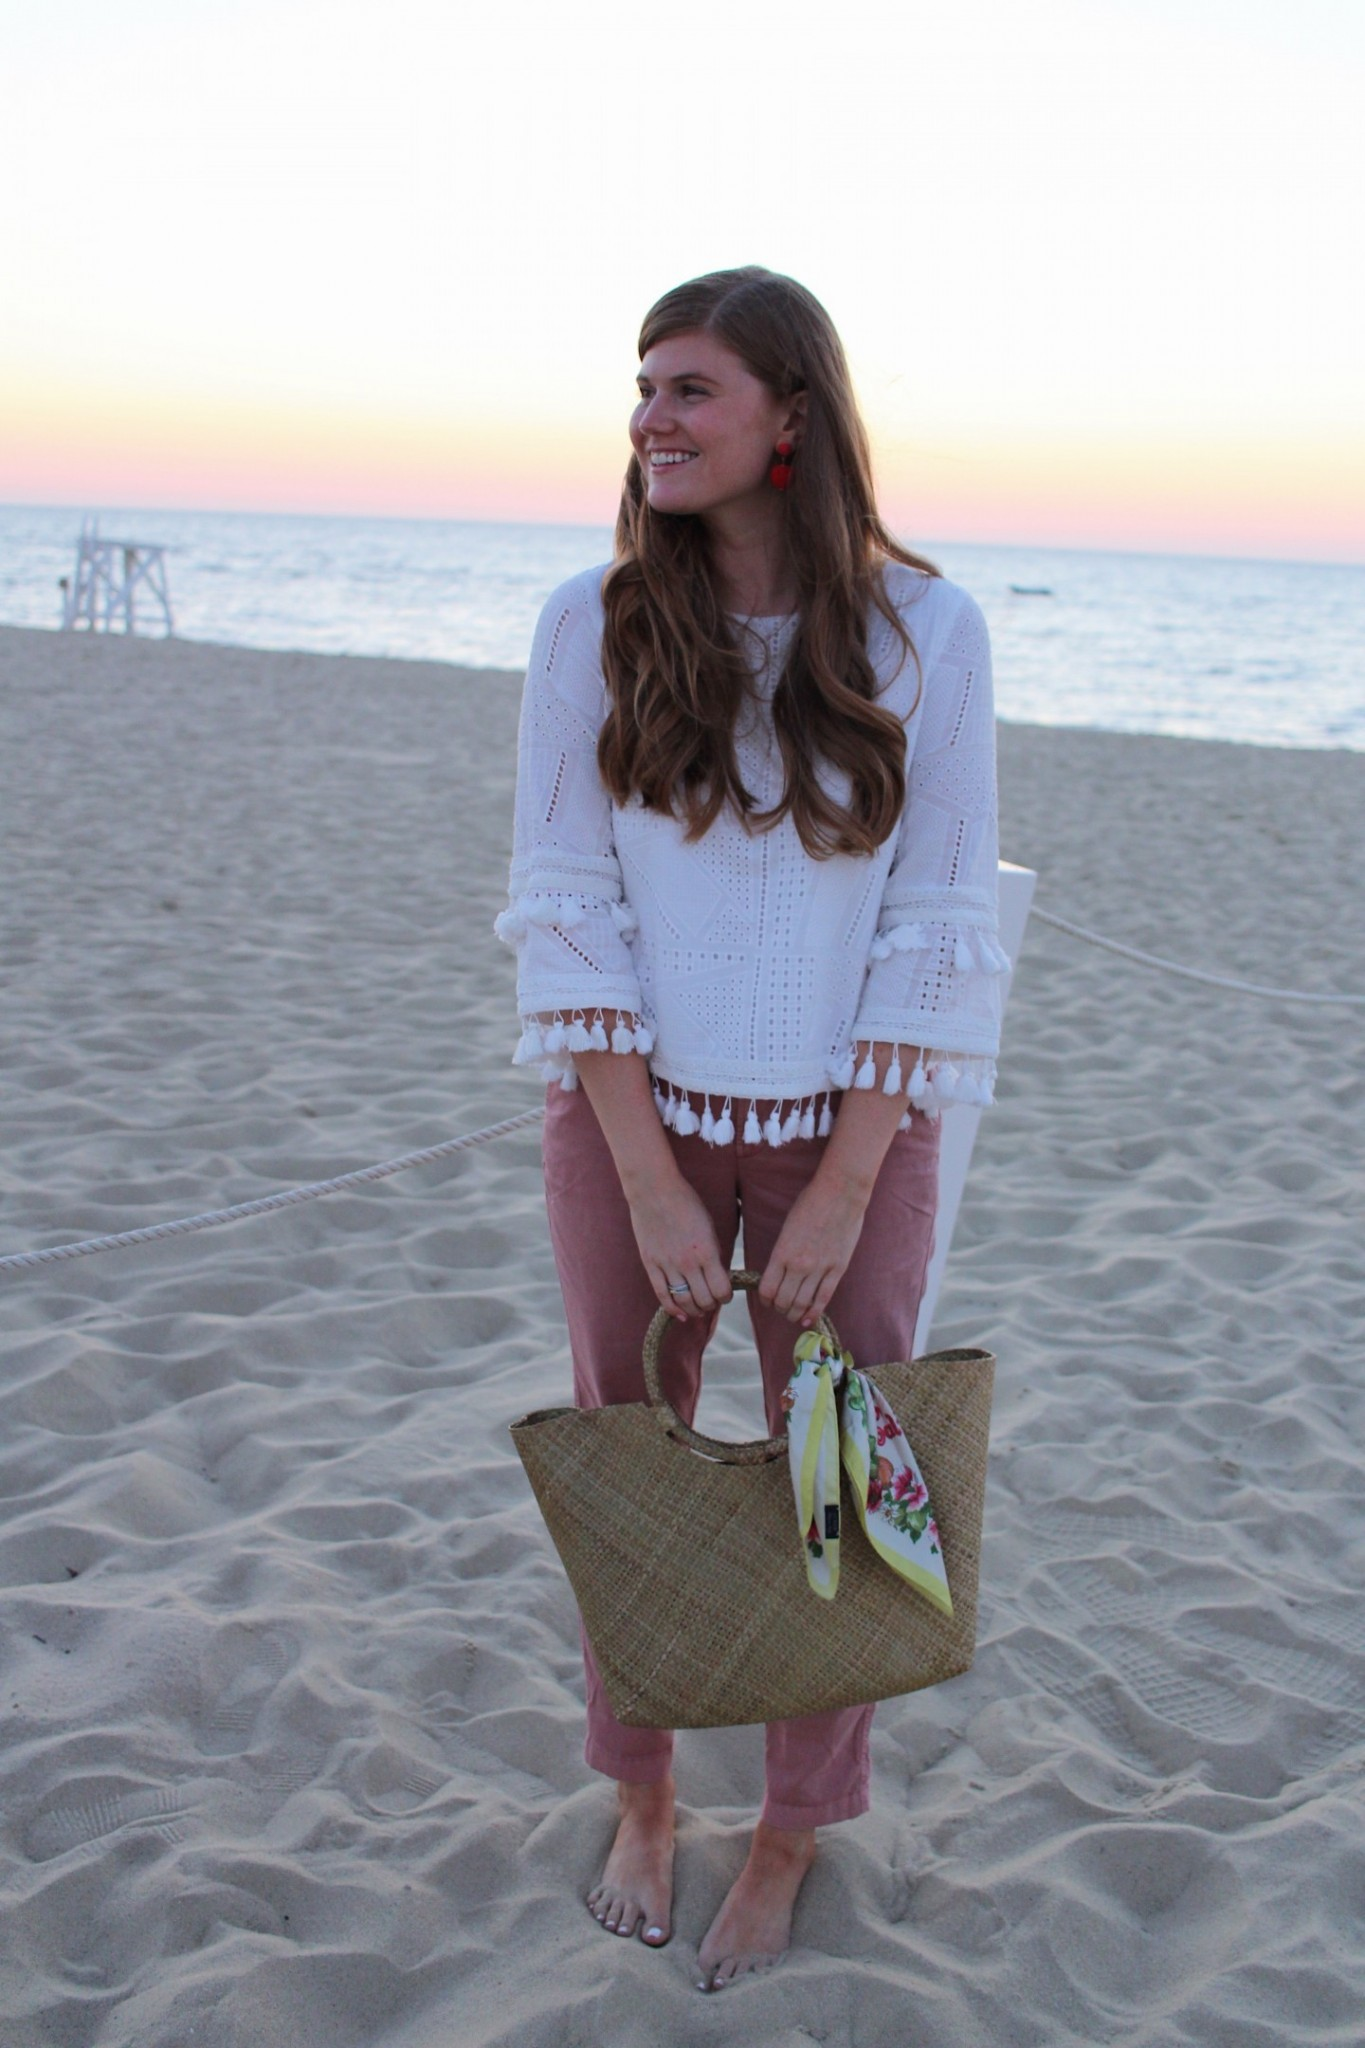 Lifestyle blogger Mollie Moore styles a look from online boutique Tuckernuck